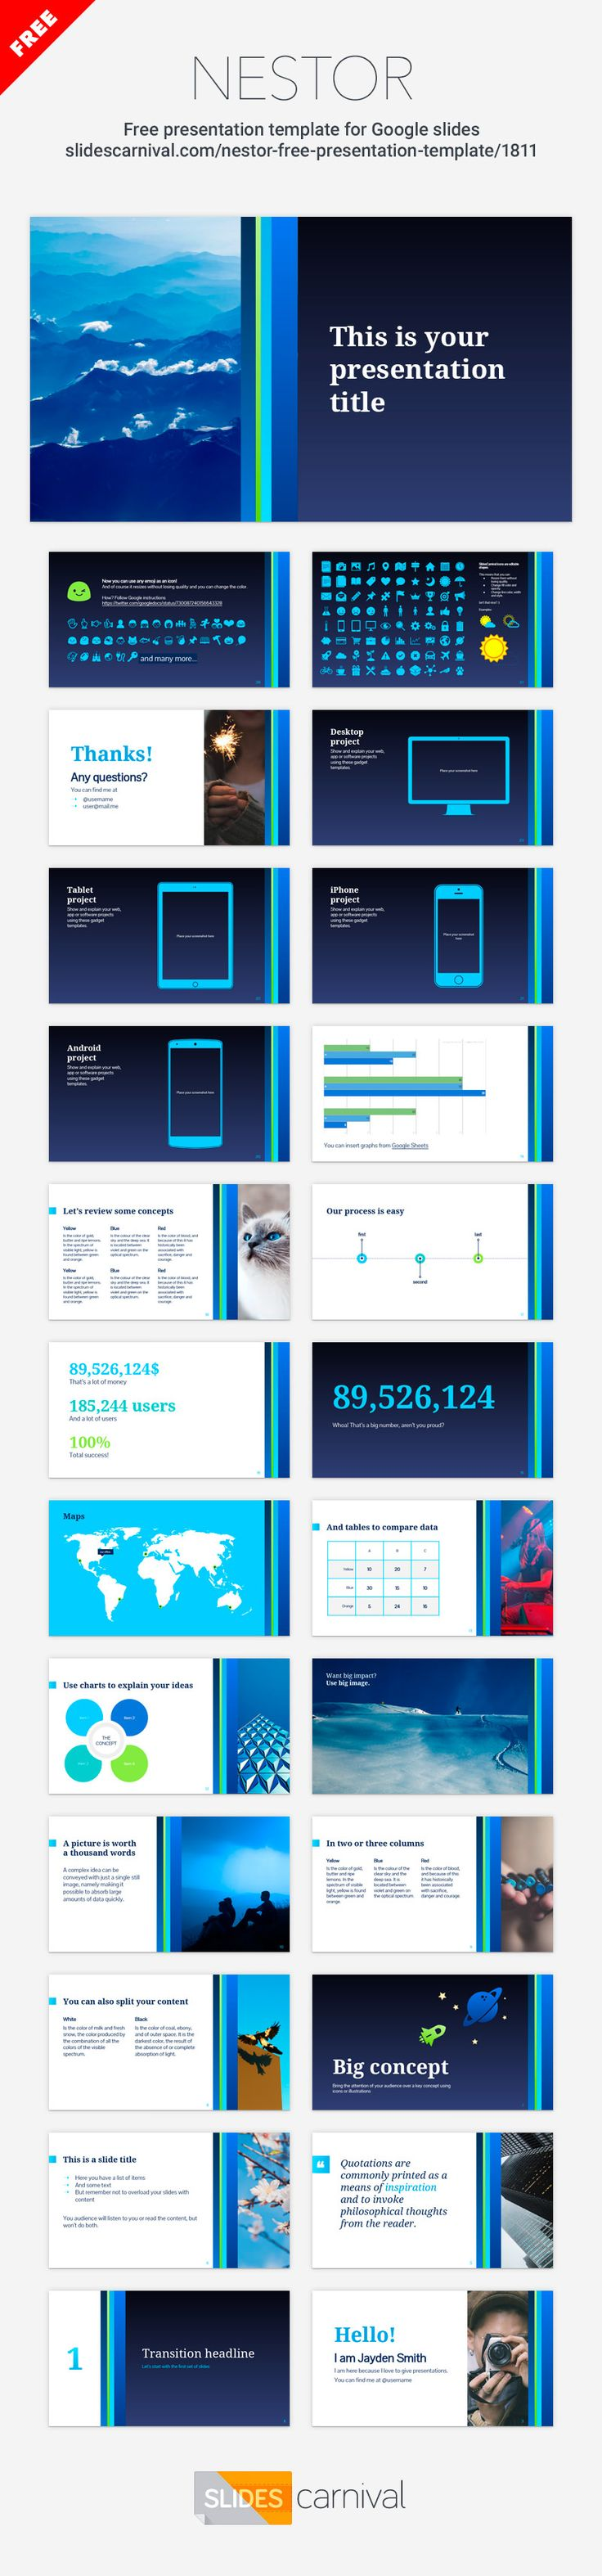 free presentation template powerpoint